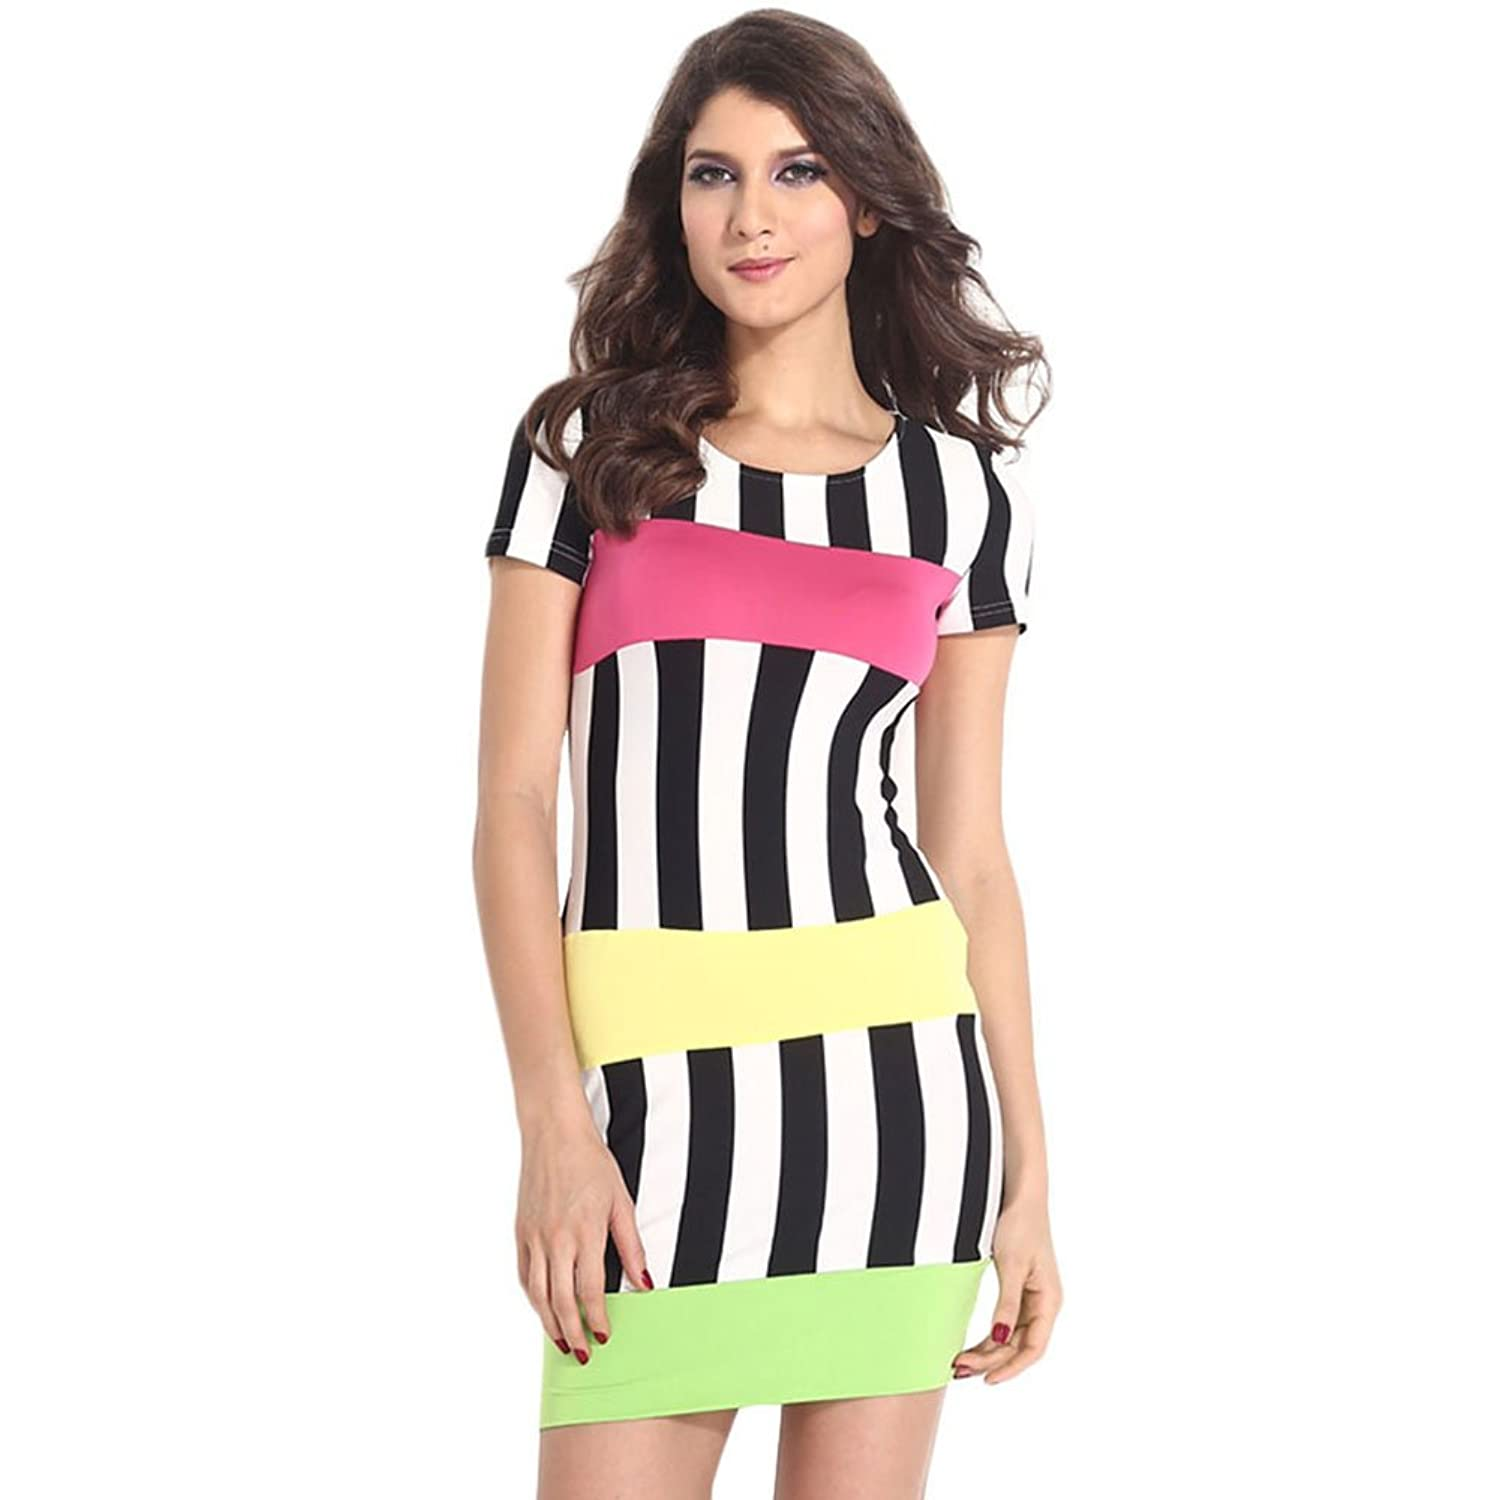 iecool Women's Hot Sale Bandage Accent Stripe Midi Bodycon Dress